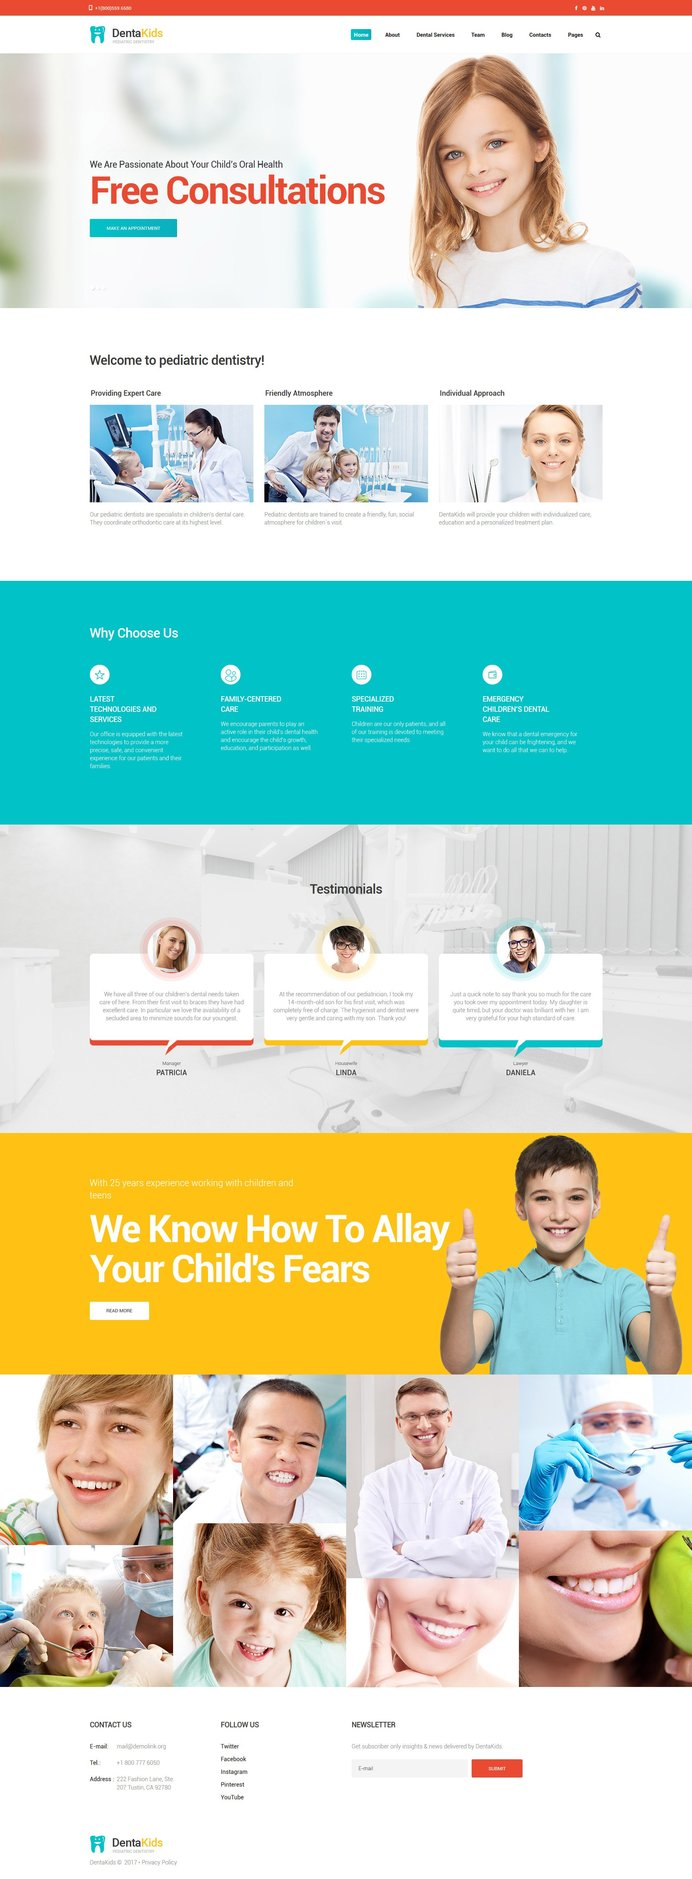 DentaKids Bootstrap Website Template